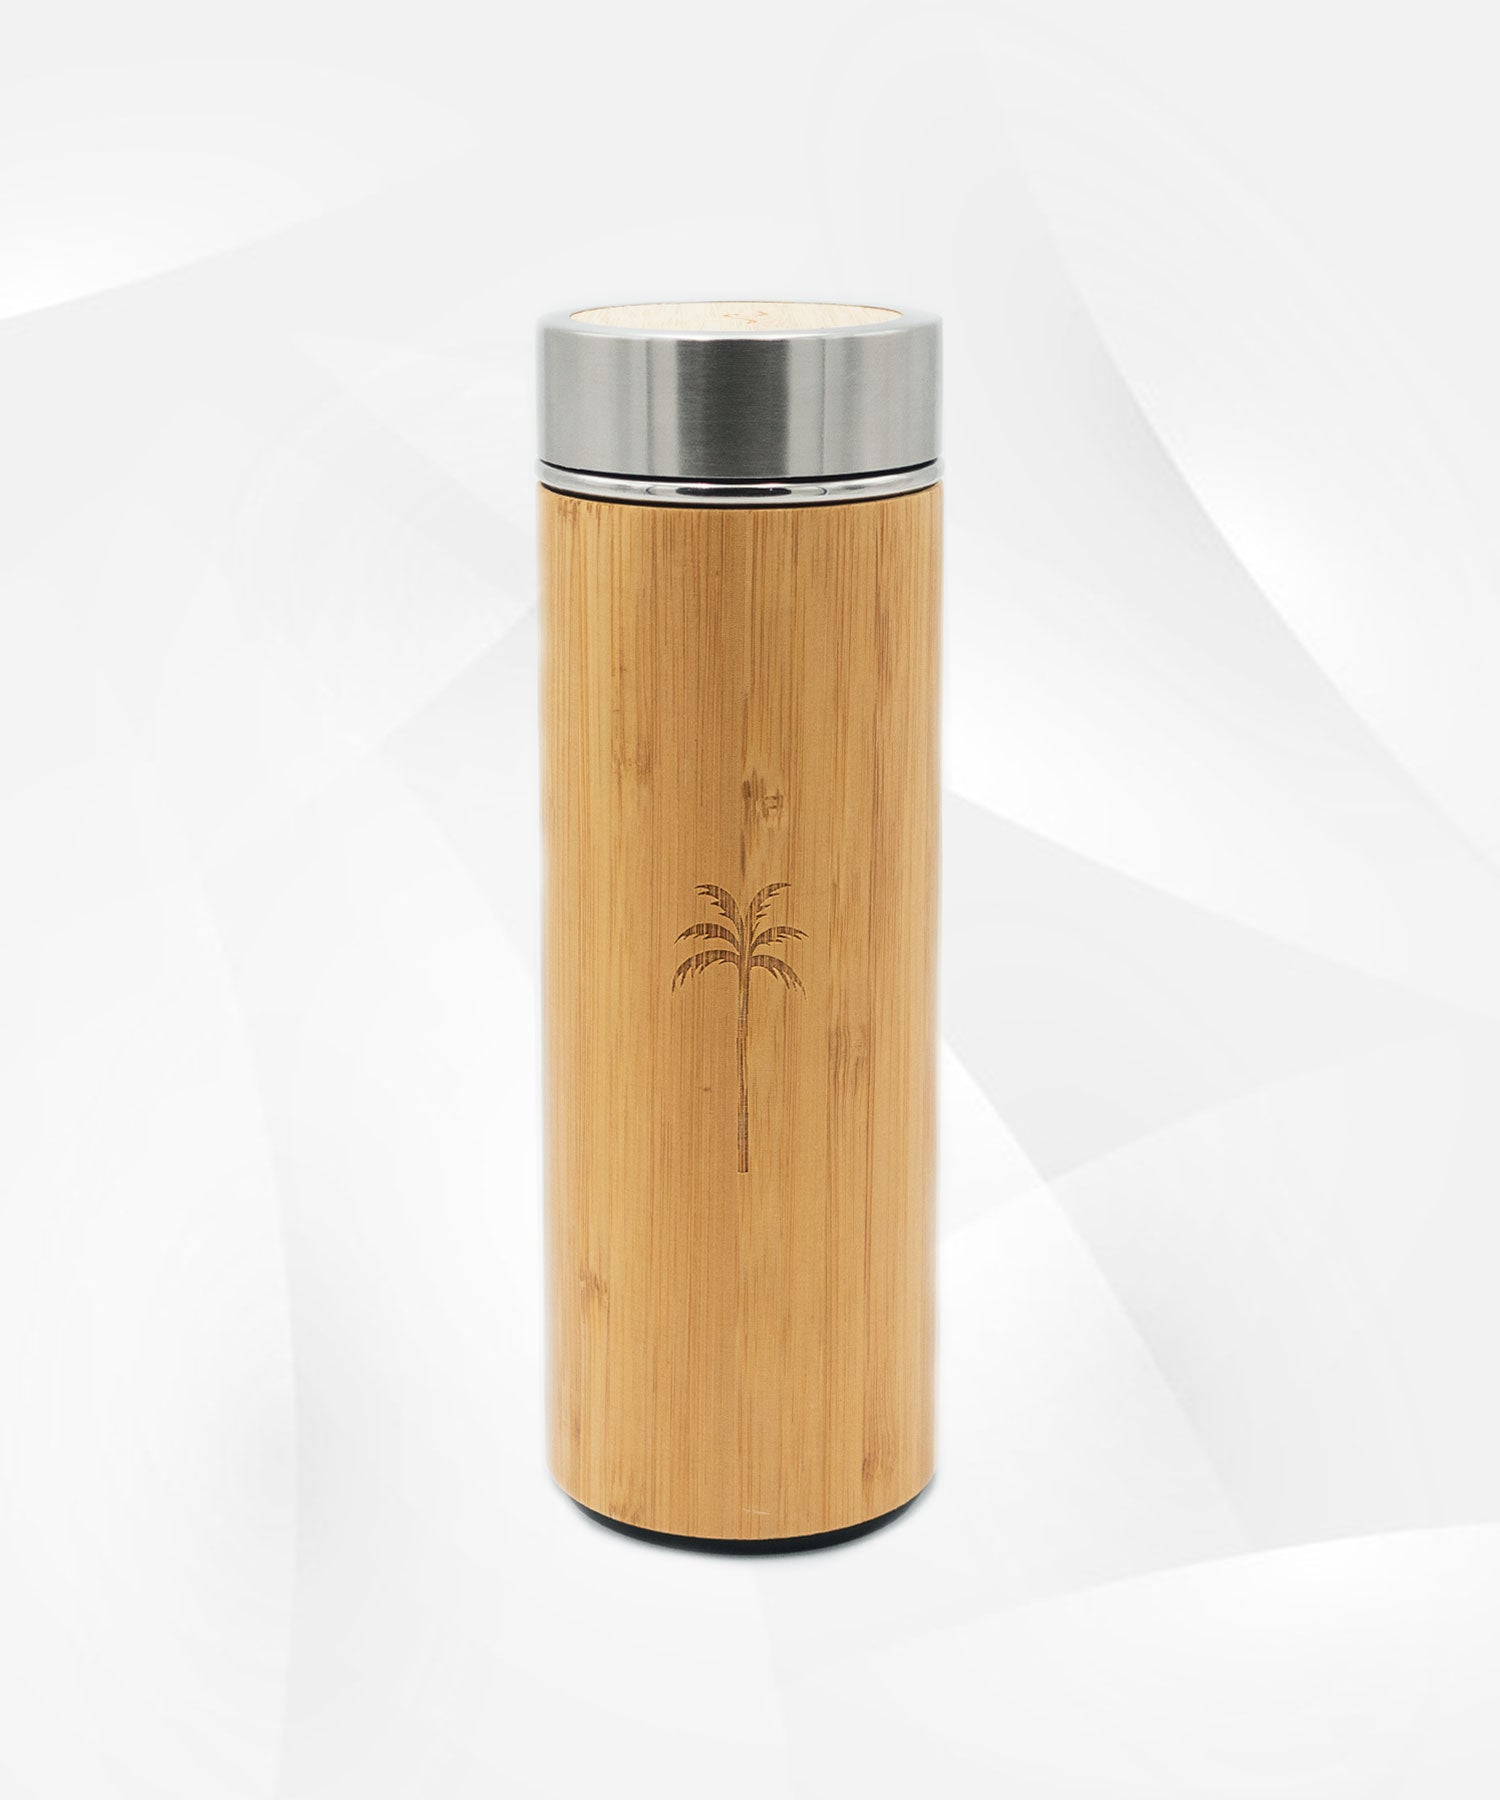 Bamboo infuser